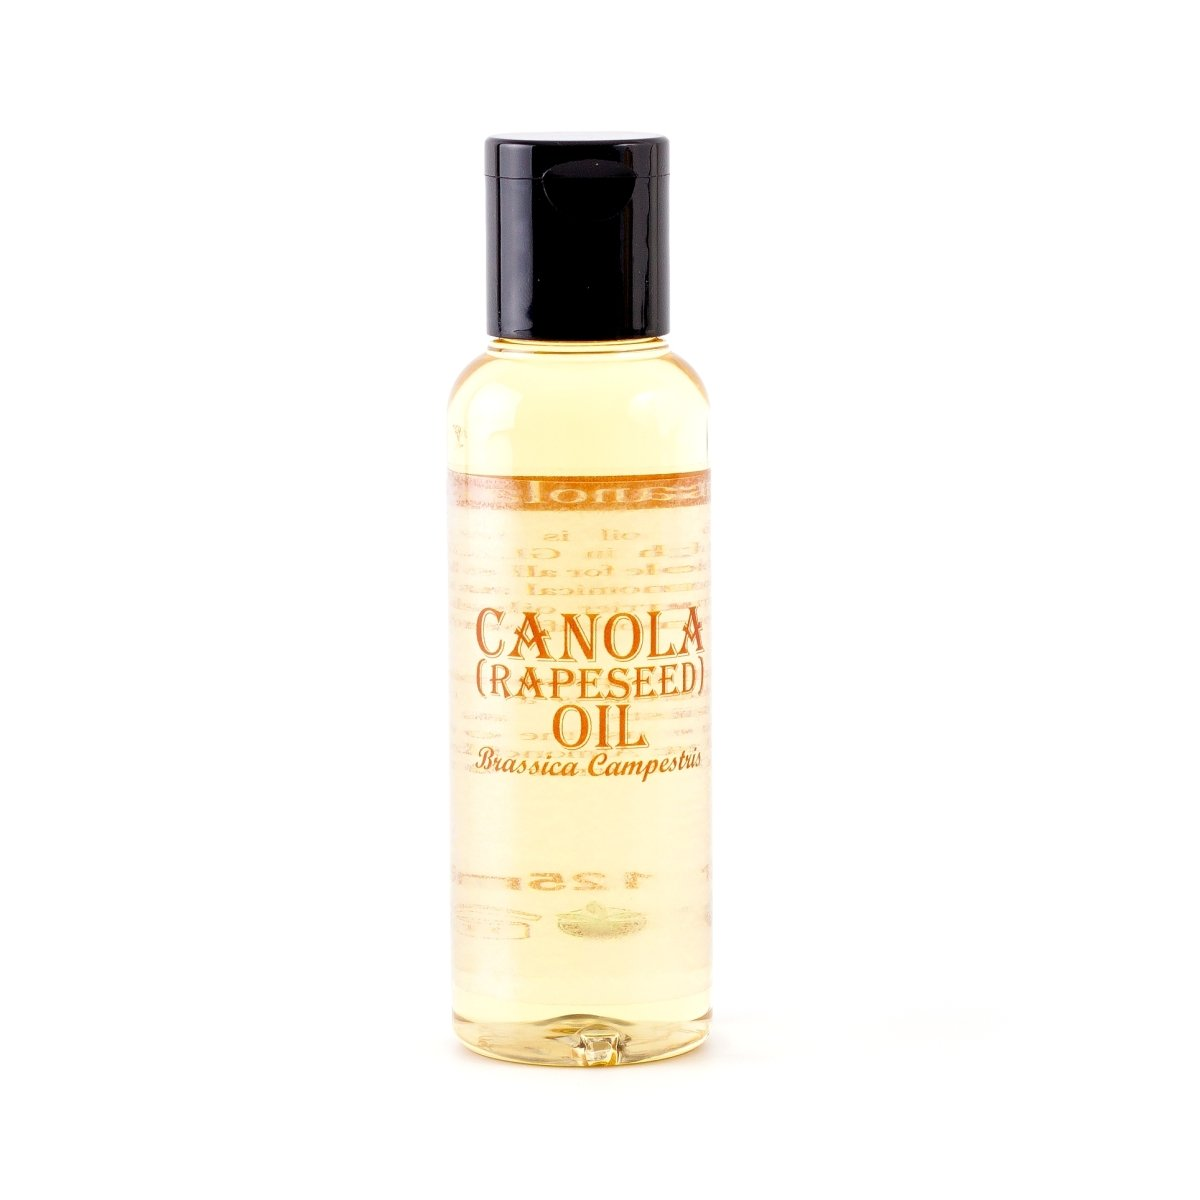 Canola (Rapeseed) Carrier Oil - Mystic Moments UK